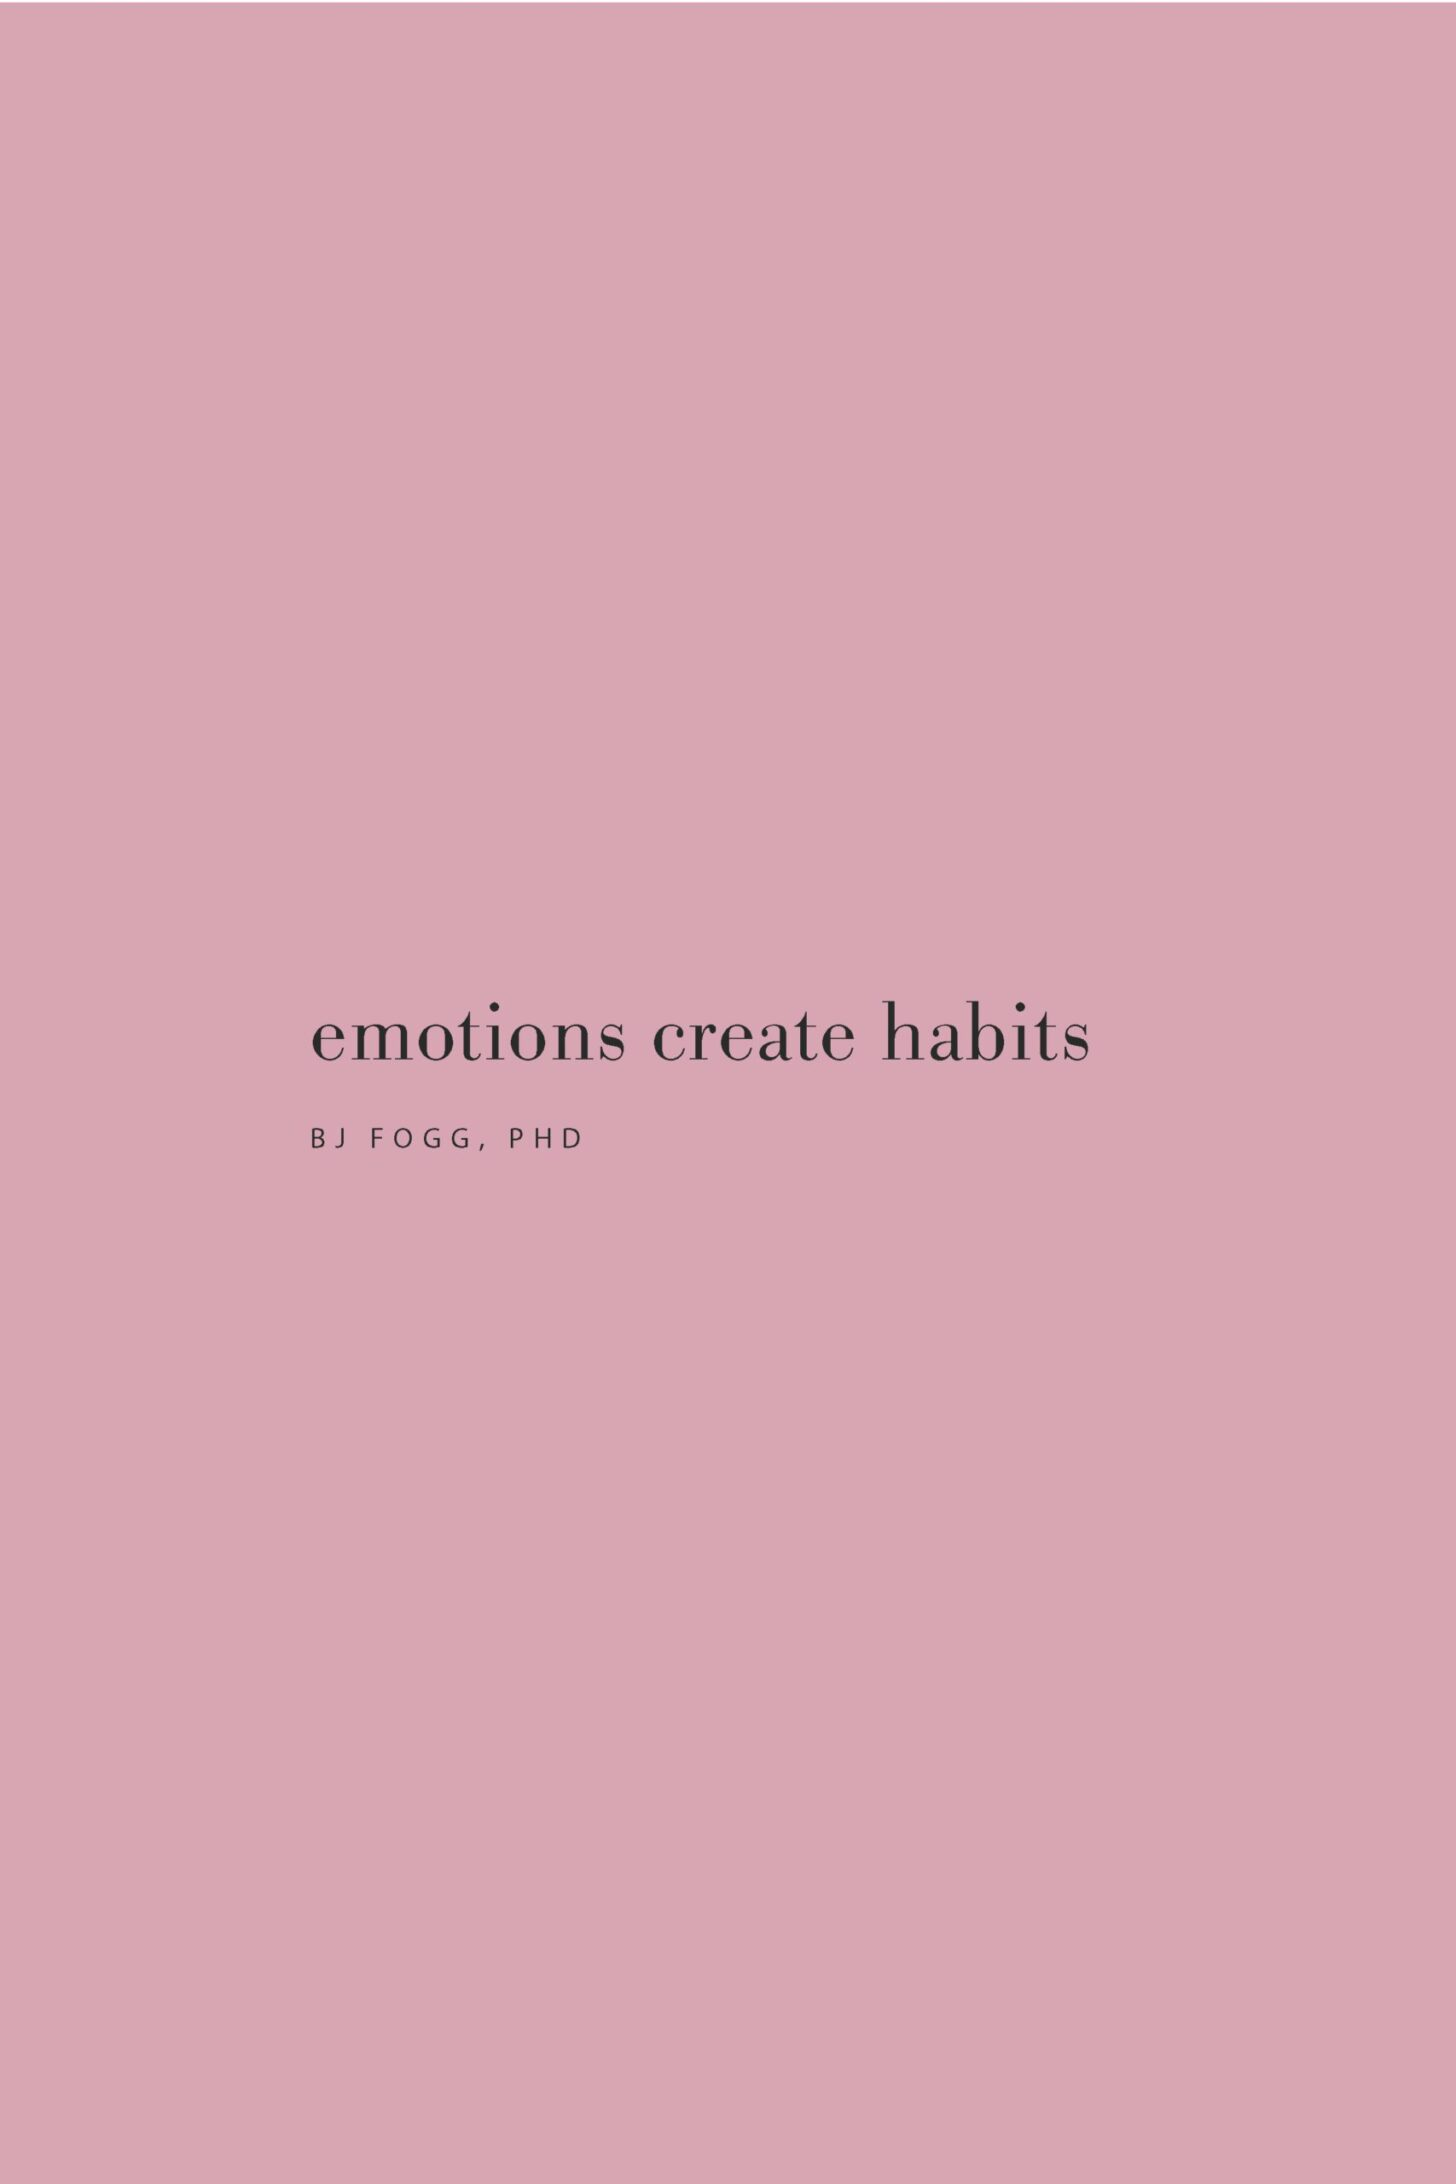 Quote on emotions creating habits by BJ Fogg, PhD on the Feel Good Effect Podcast. #realfoodwholelife #feelgoodeffectpodcast #habitformaitonquote #howtocreatehabits #healthyhabitsquote #dailyroutinequotes #habitquotes #routinequotes